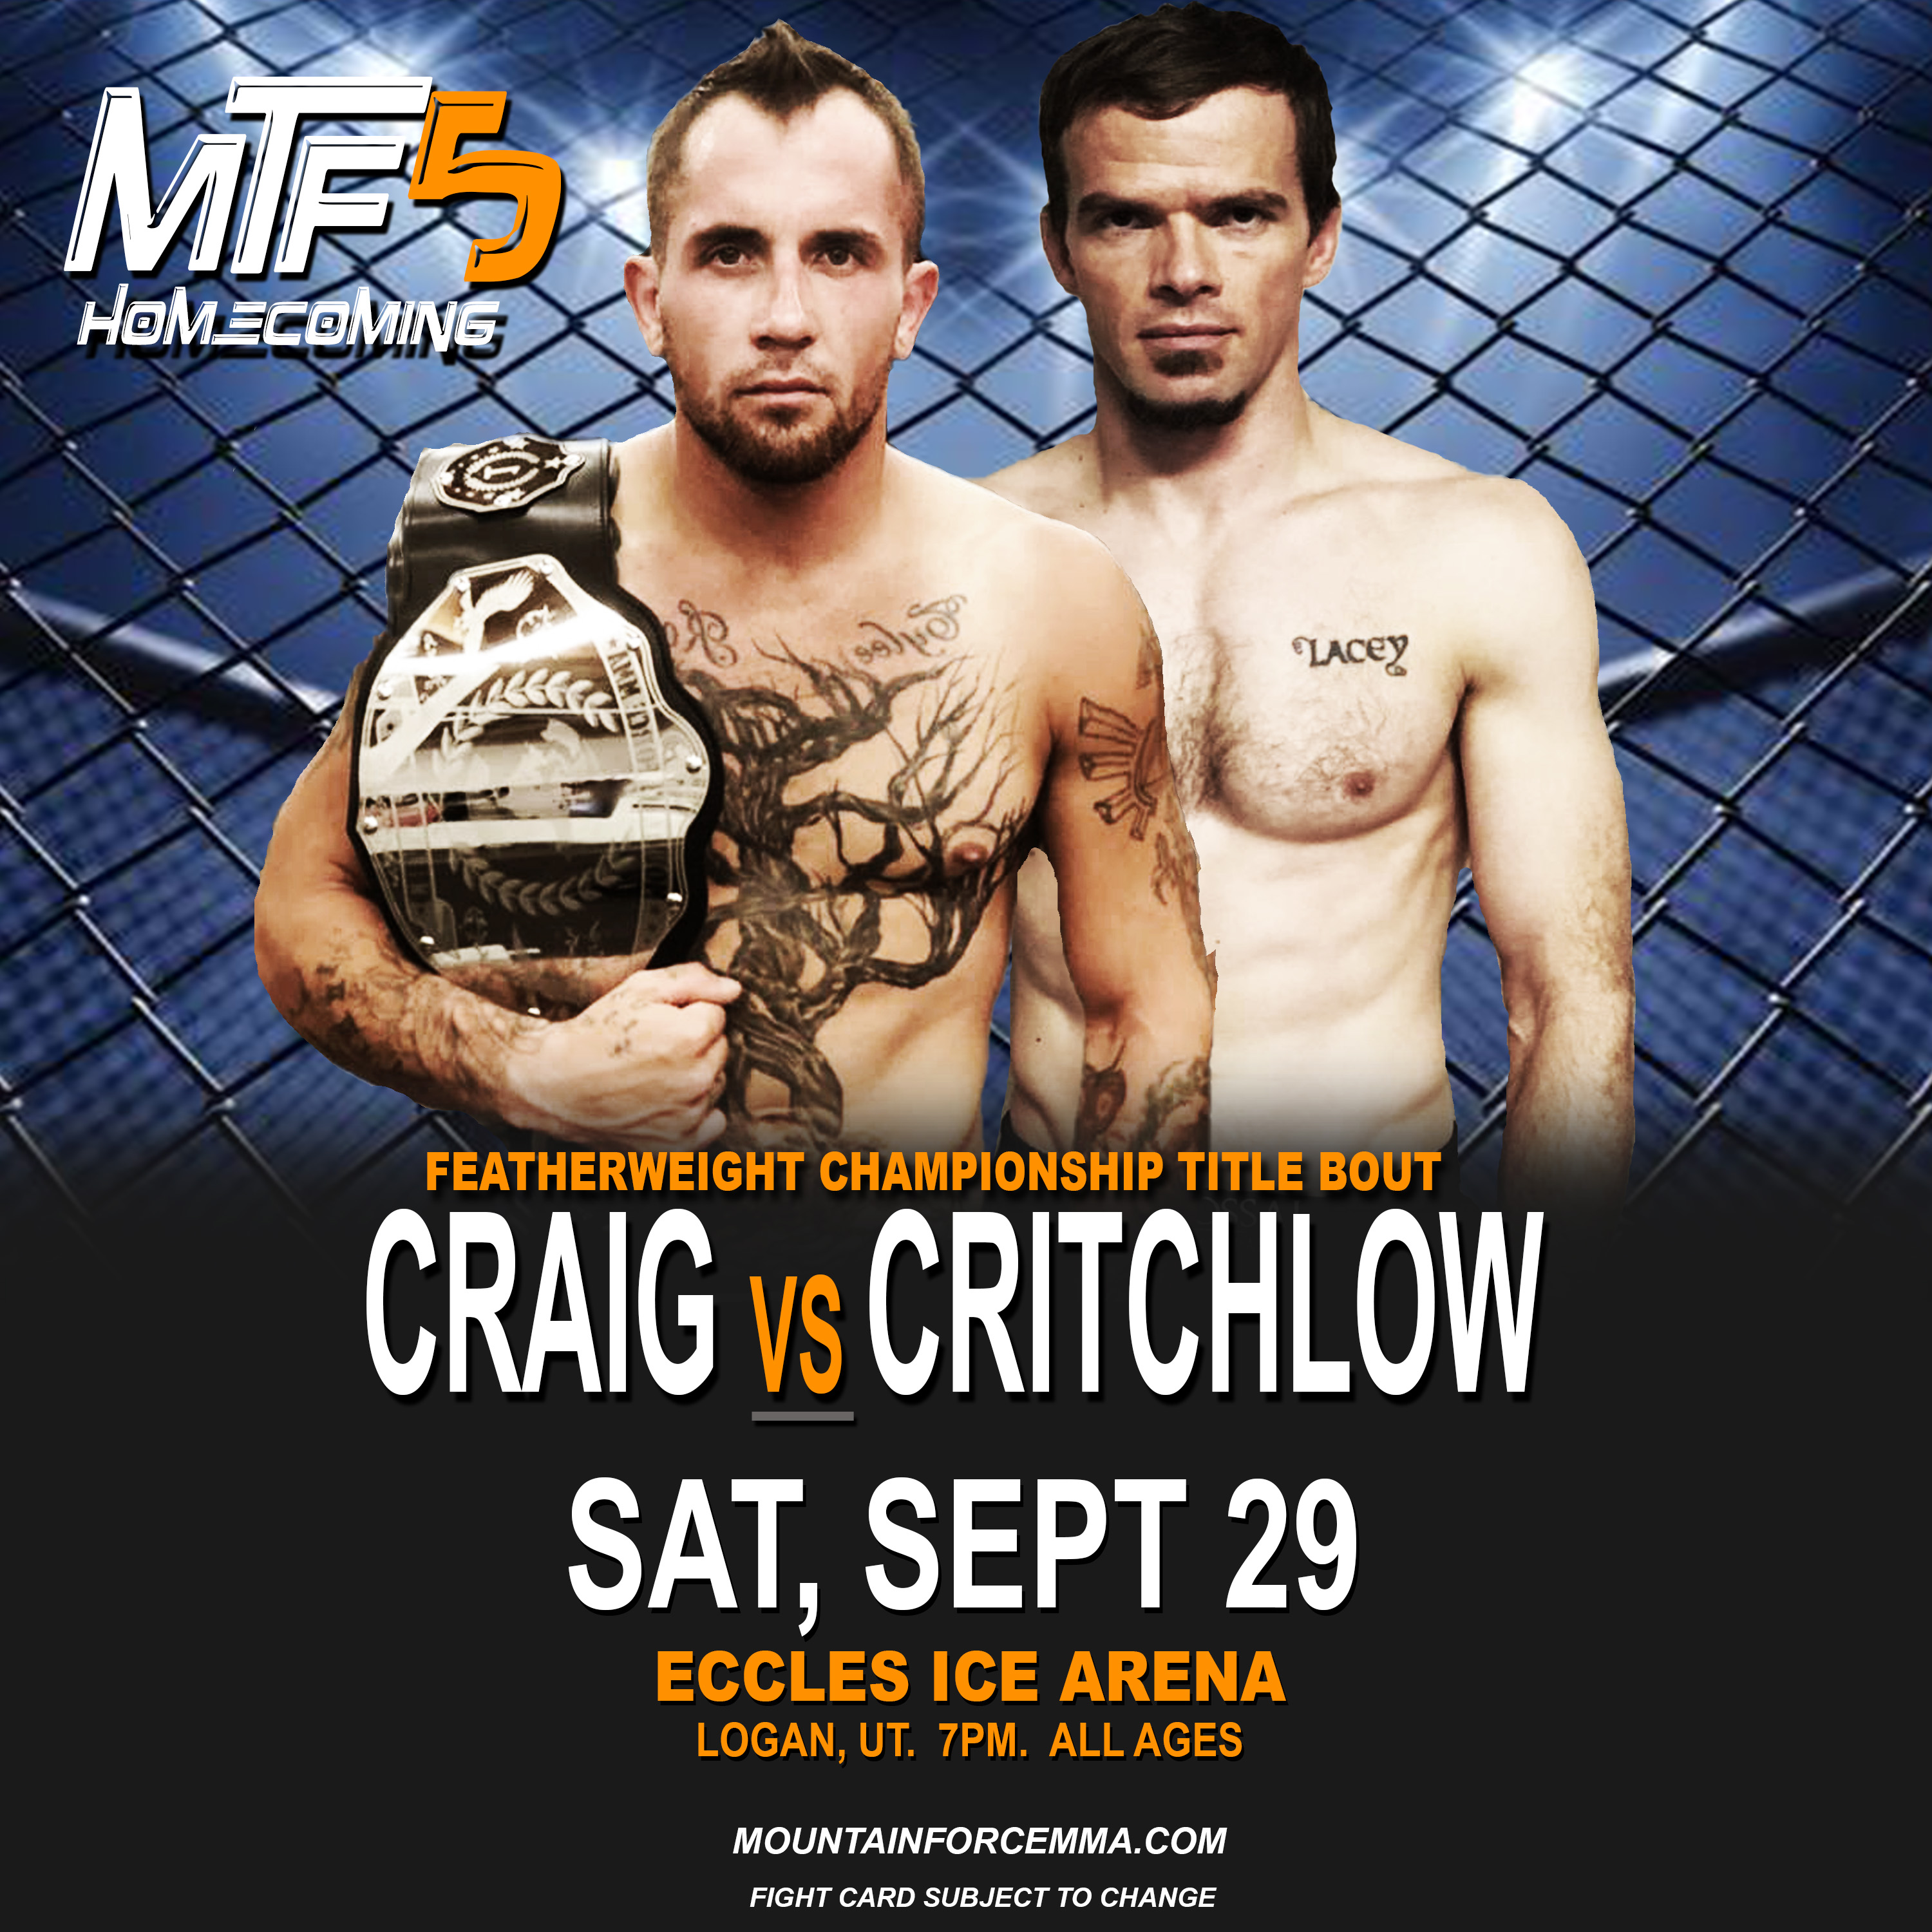 CRAIG VS CRITCHLOW - FIGHT CARD MTF 5